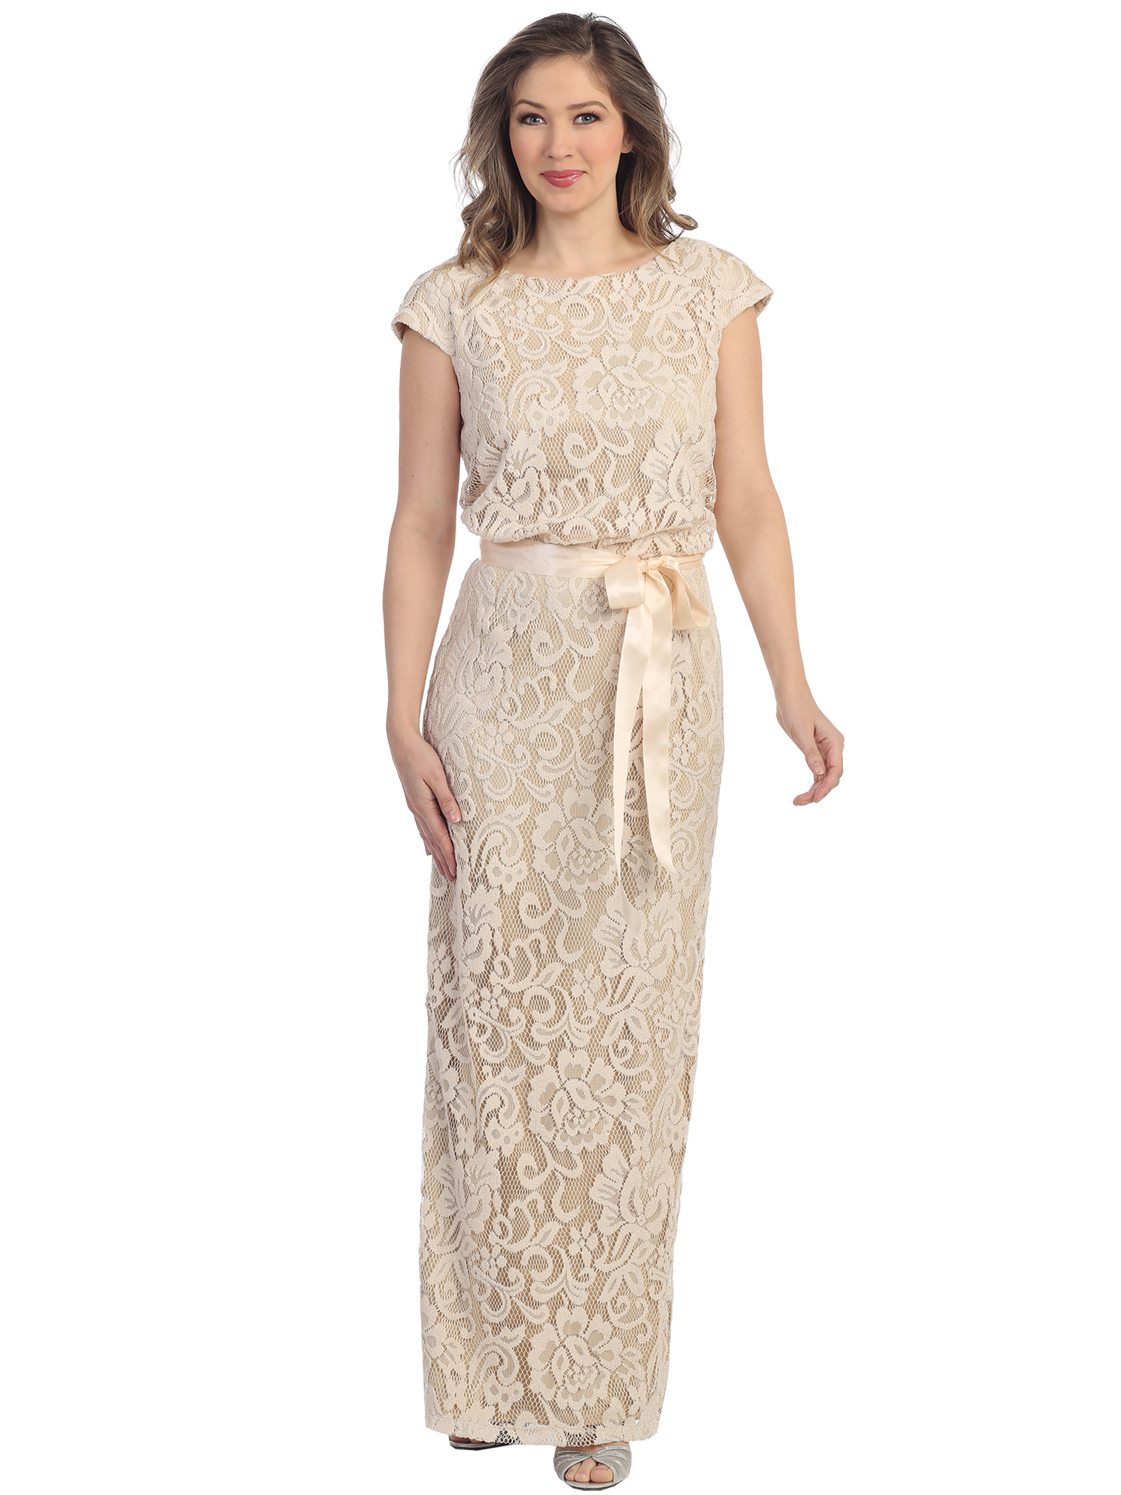 Cap Sleeve Lace Overlay Evening Dress with Sash Belt | Sung Boutique ...